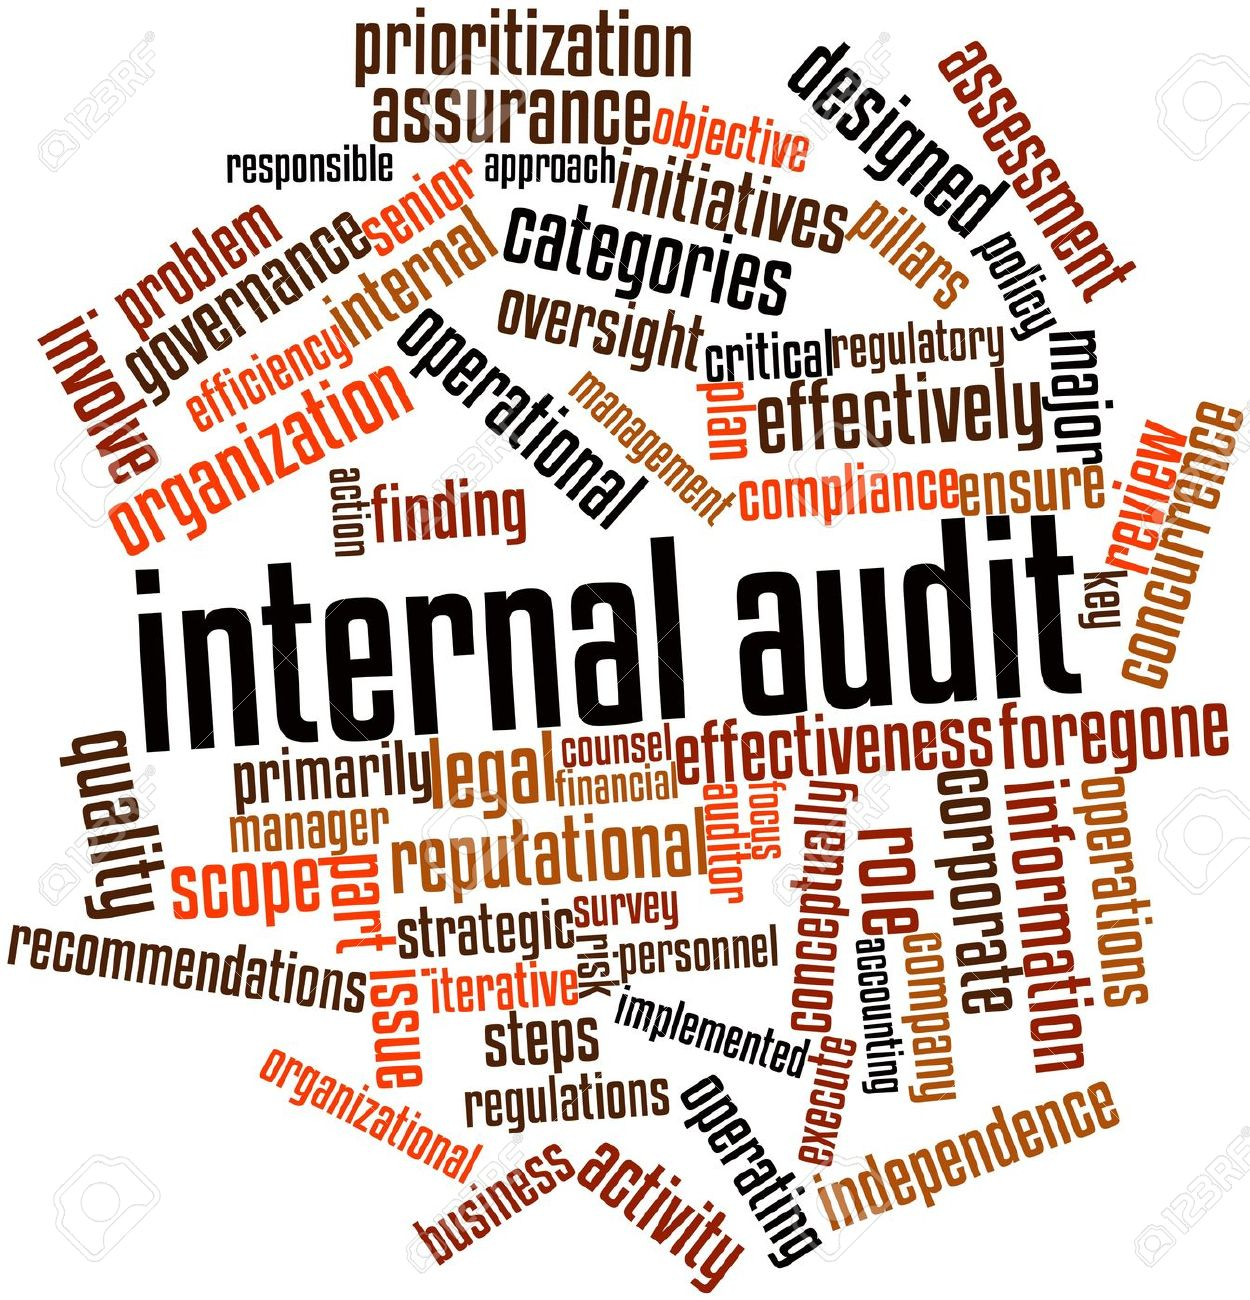 internal controls relating to the ljb Internal controls relating to the bjb company all publicly trader companies in the usa are required to maintain and have an up to date system of internal controls since the ljb company is wishing to become a public entity, i am glad to be able to assist in this action.